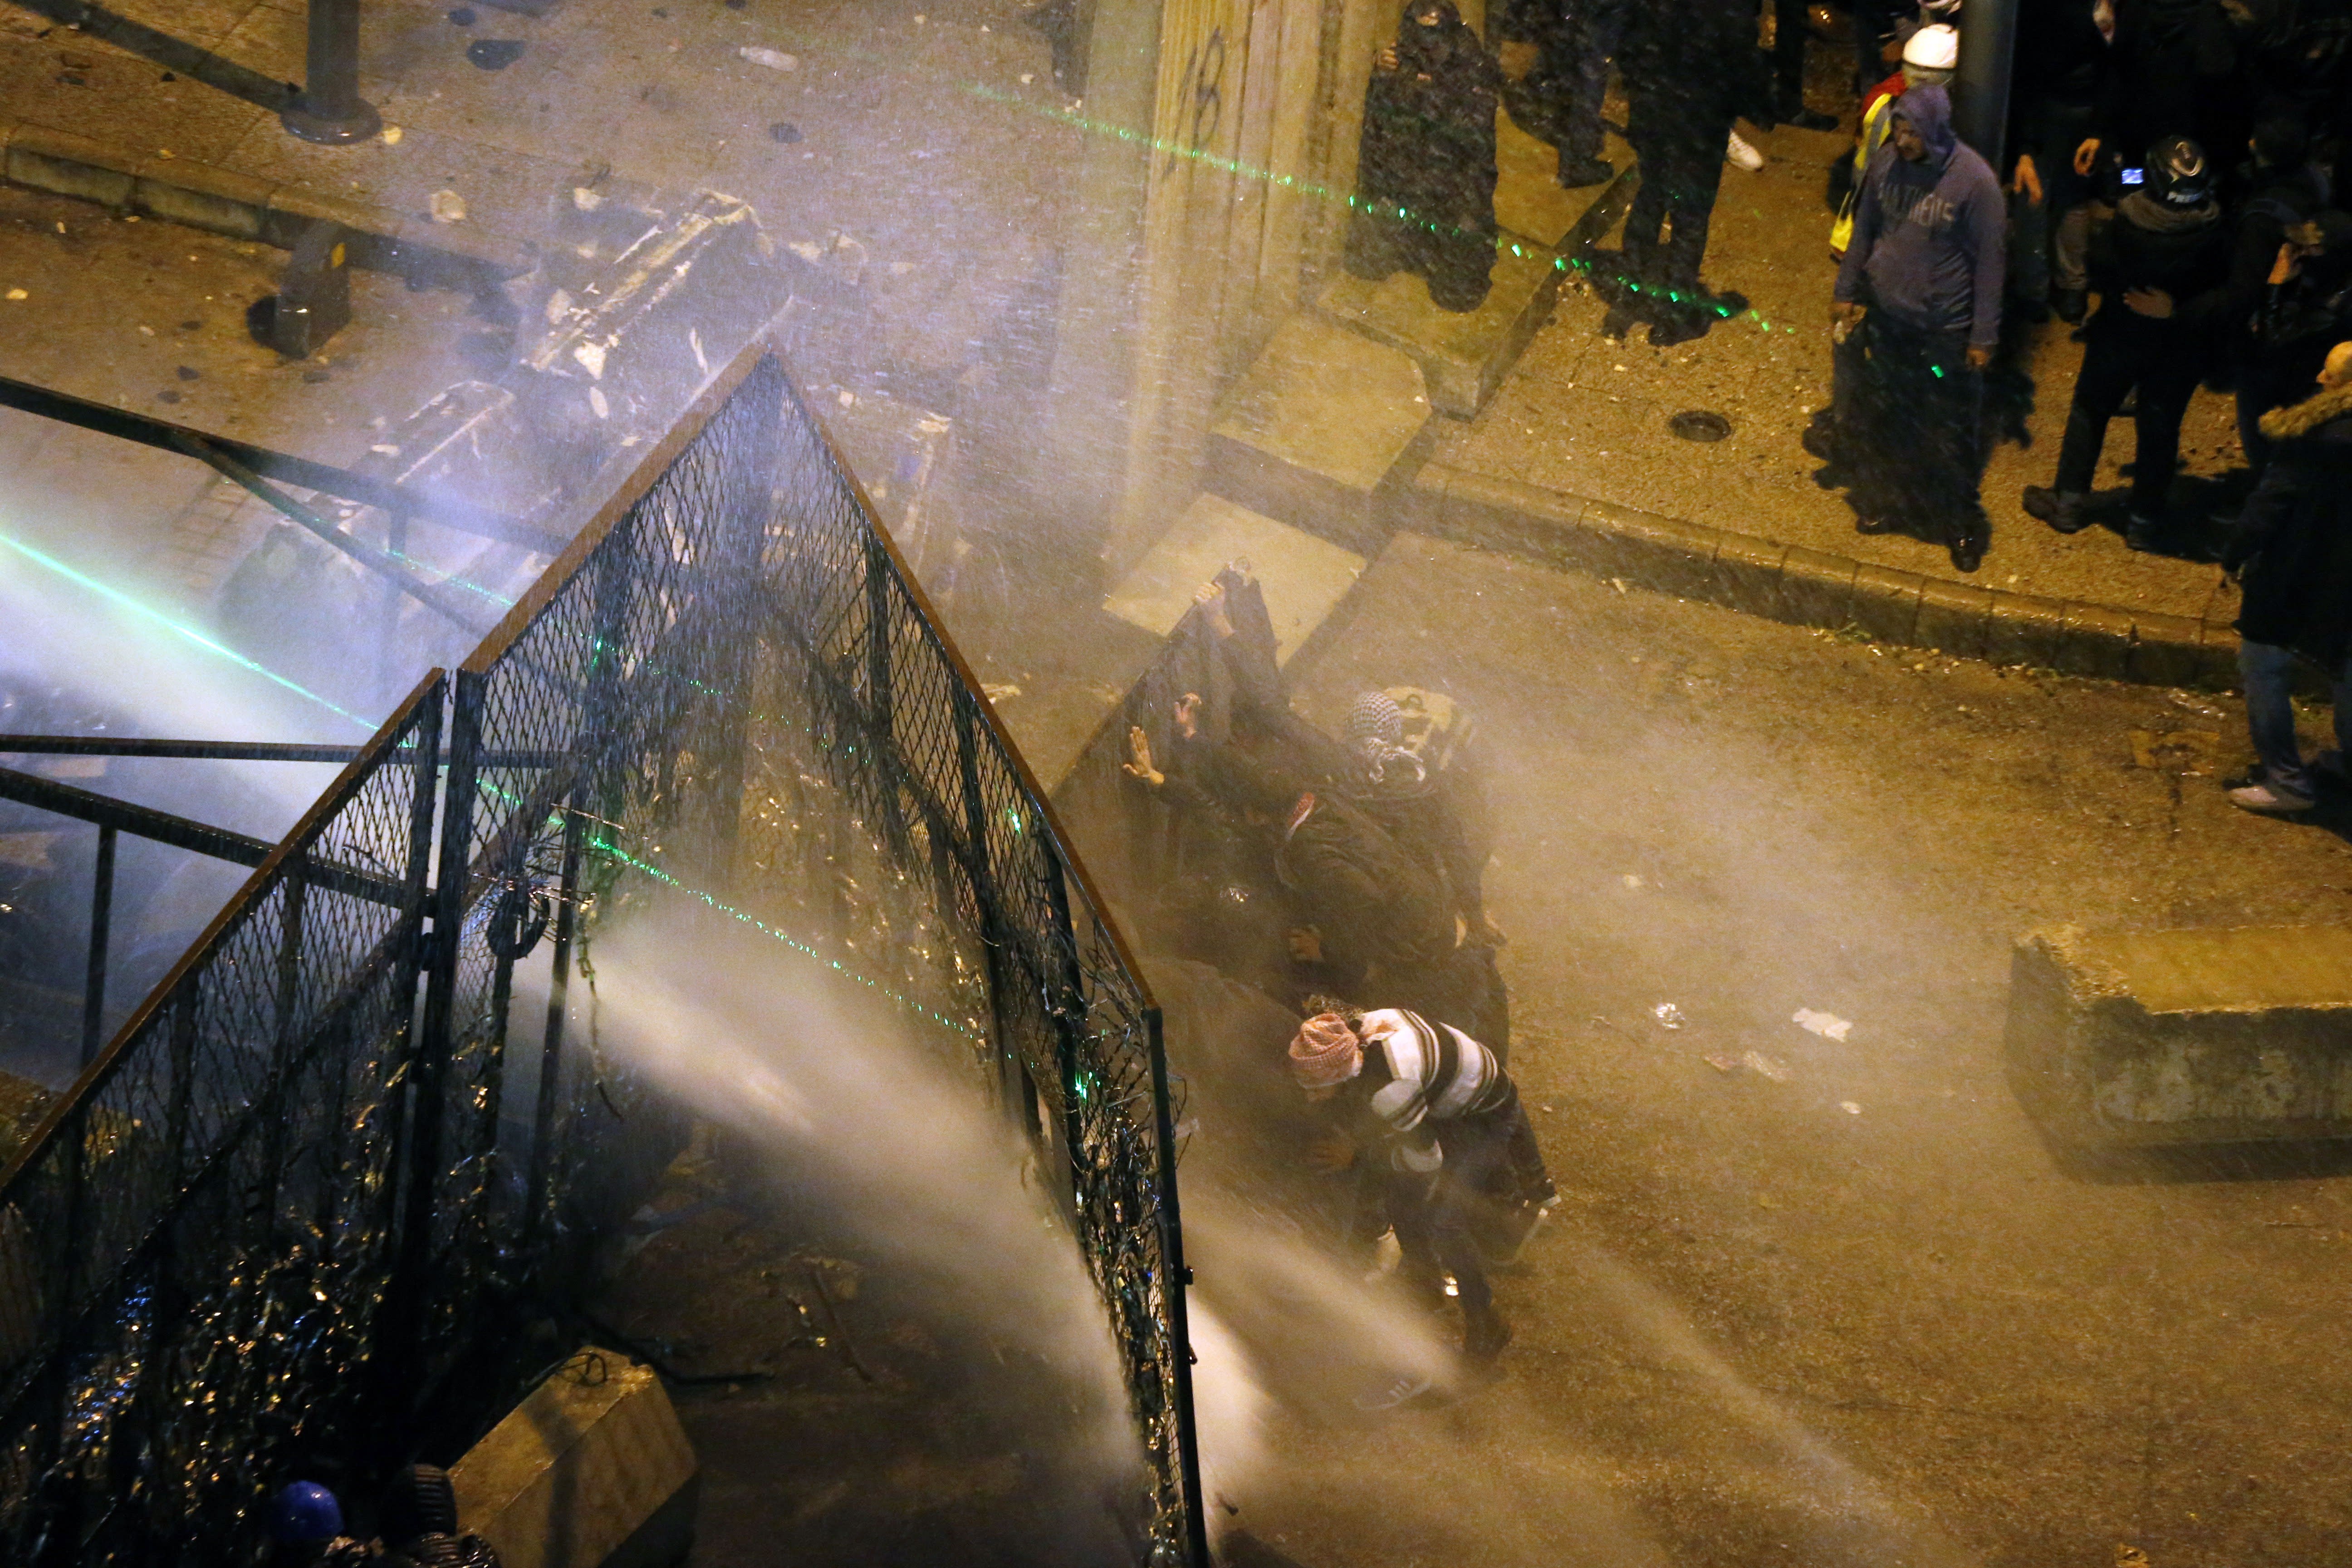 Riot police sprayed anti-government protesters with water cannons as they try to cross to the central government building during ongoing protests in Beirut, Lebanon, Saturday, Jan. 25, 2020. Hundreds of Lebanese gathered outside the central government building to reject the newly formed Cabinet, while some protesters breached tight security erected around it, removing a metal gate and barbed wire prompting a stream of water cannons from security forces. (AP Photo/Bilal Hussein)